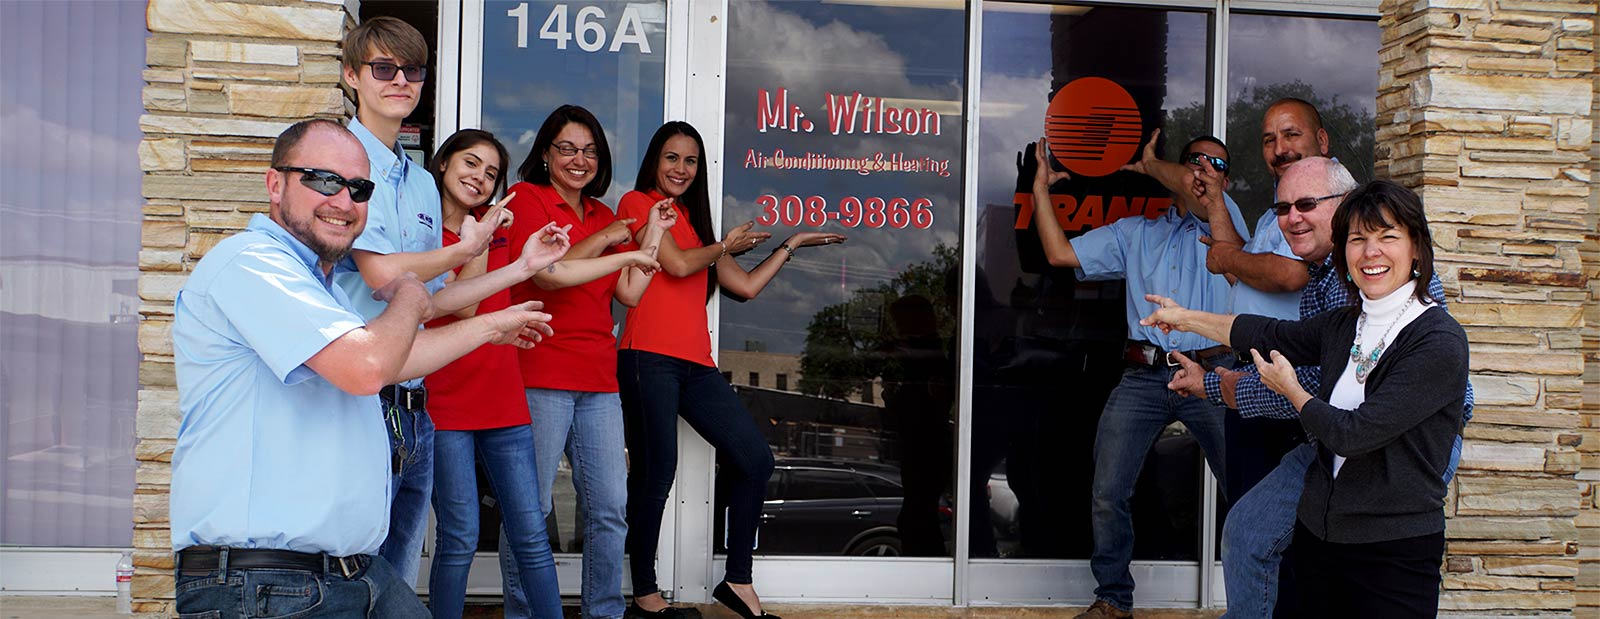 Mr Wilson Heating & Air Conditioning San Antonio AC Repair Office